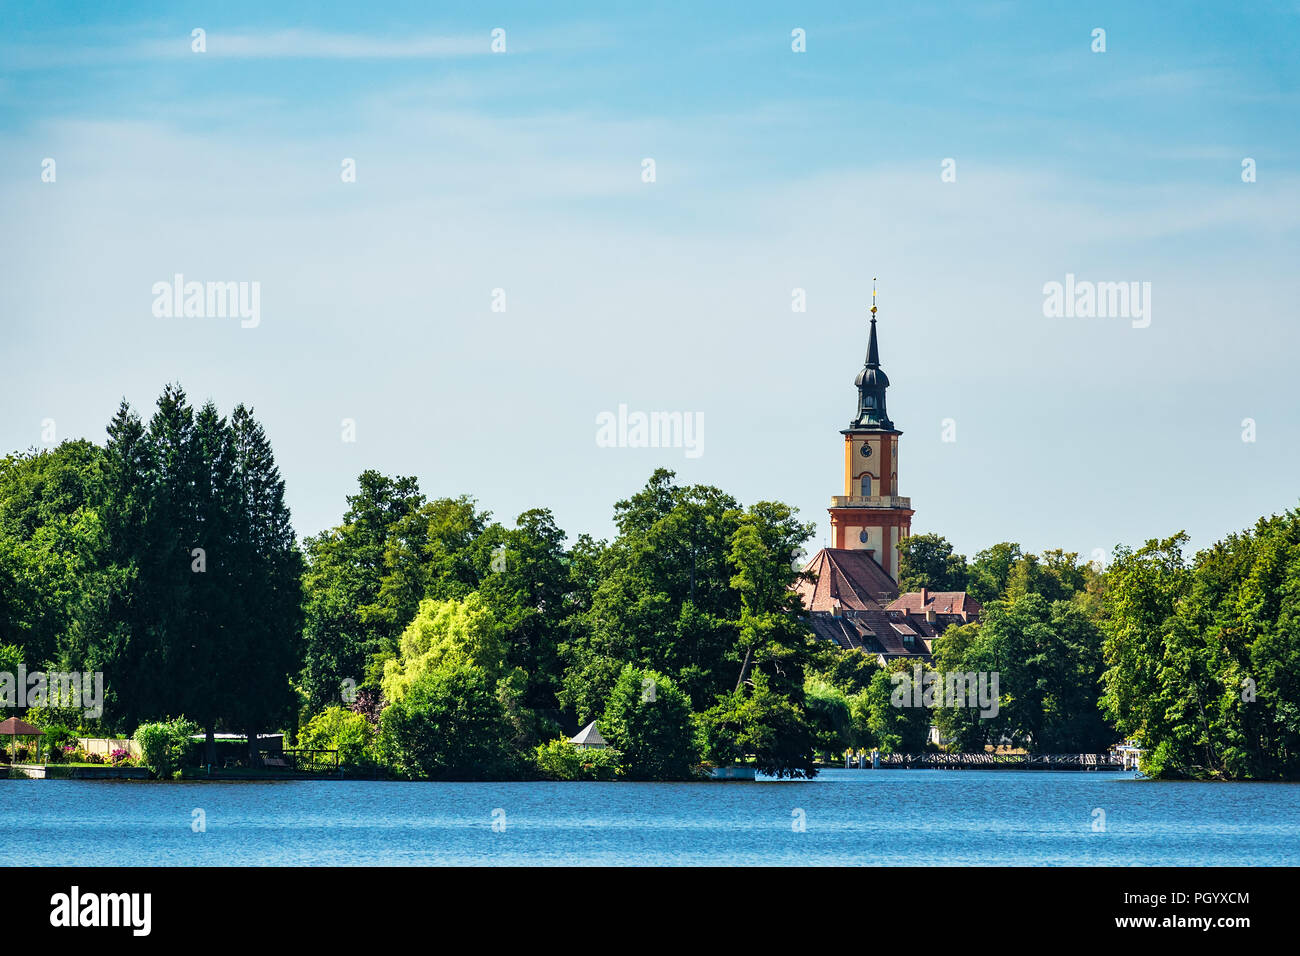 Church on a lake in Templin, Germany. - Stock Image